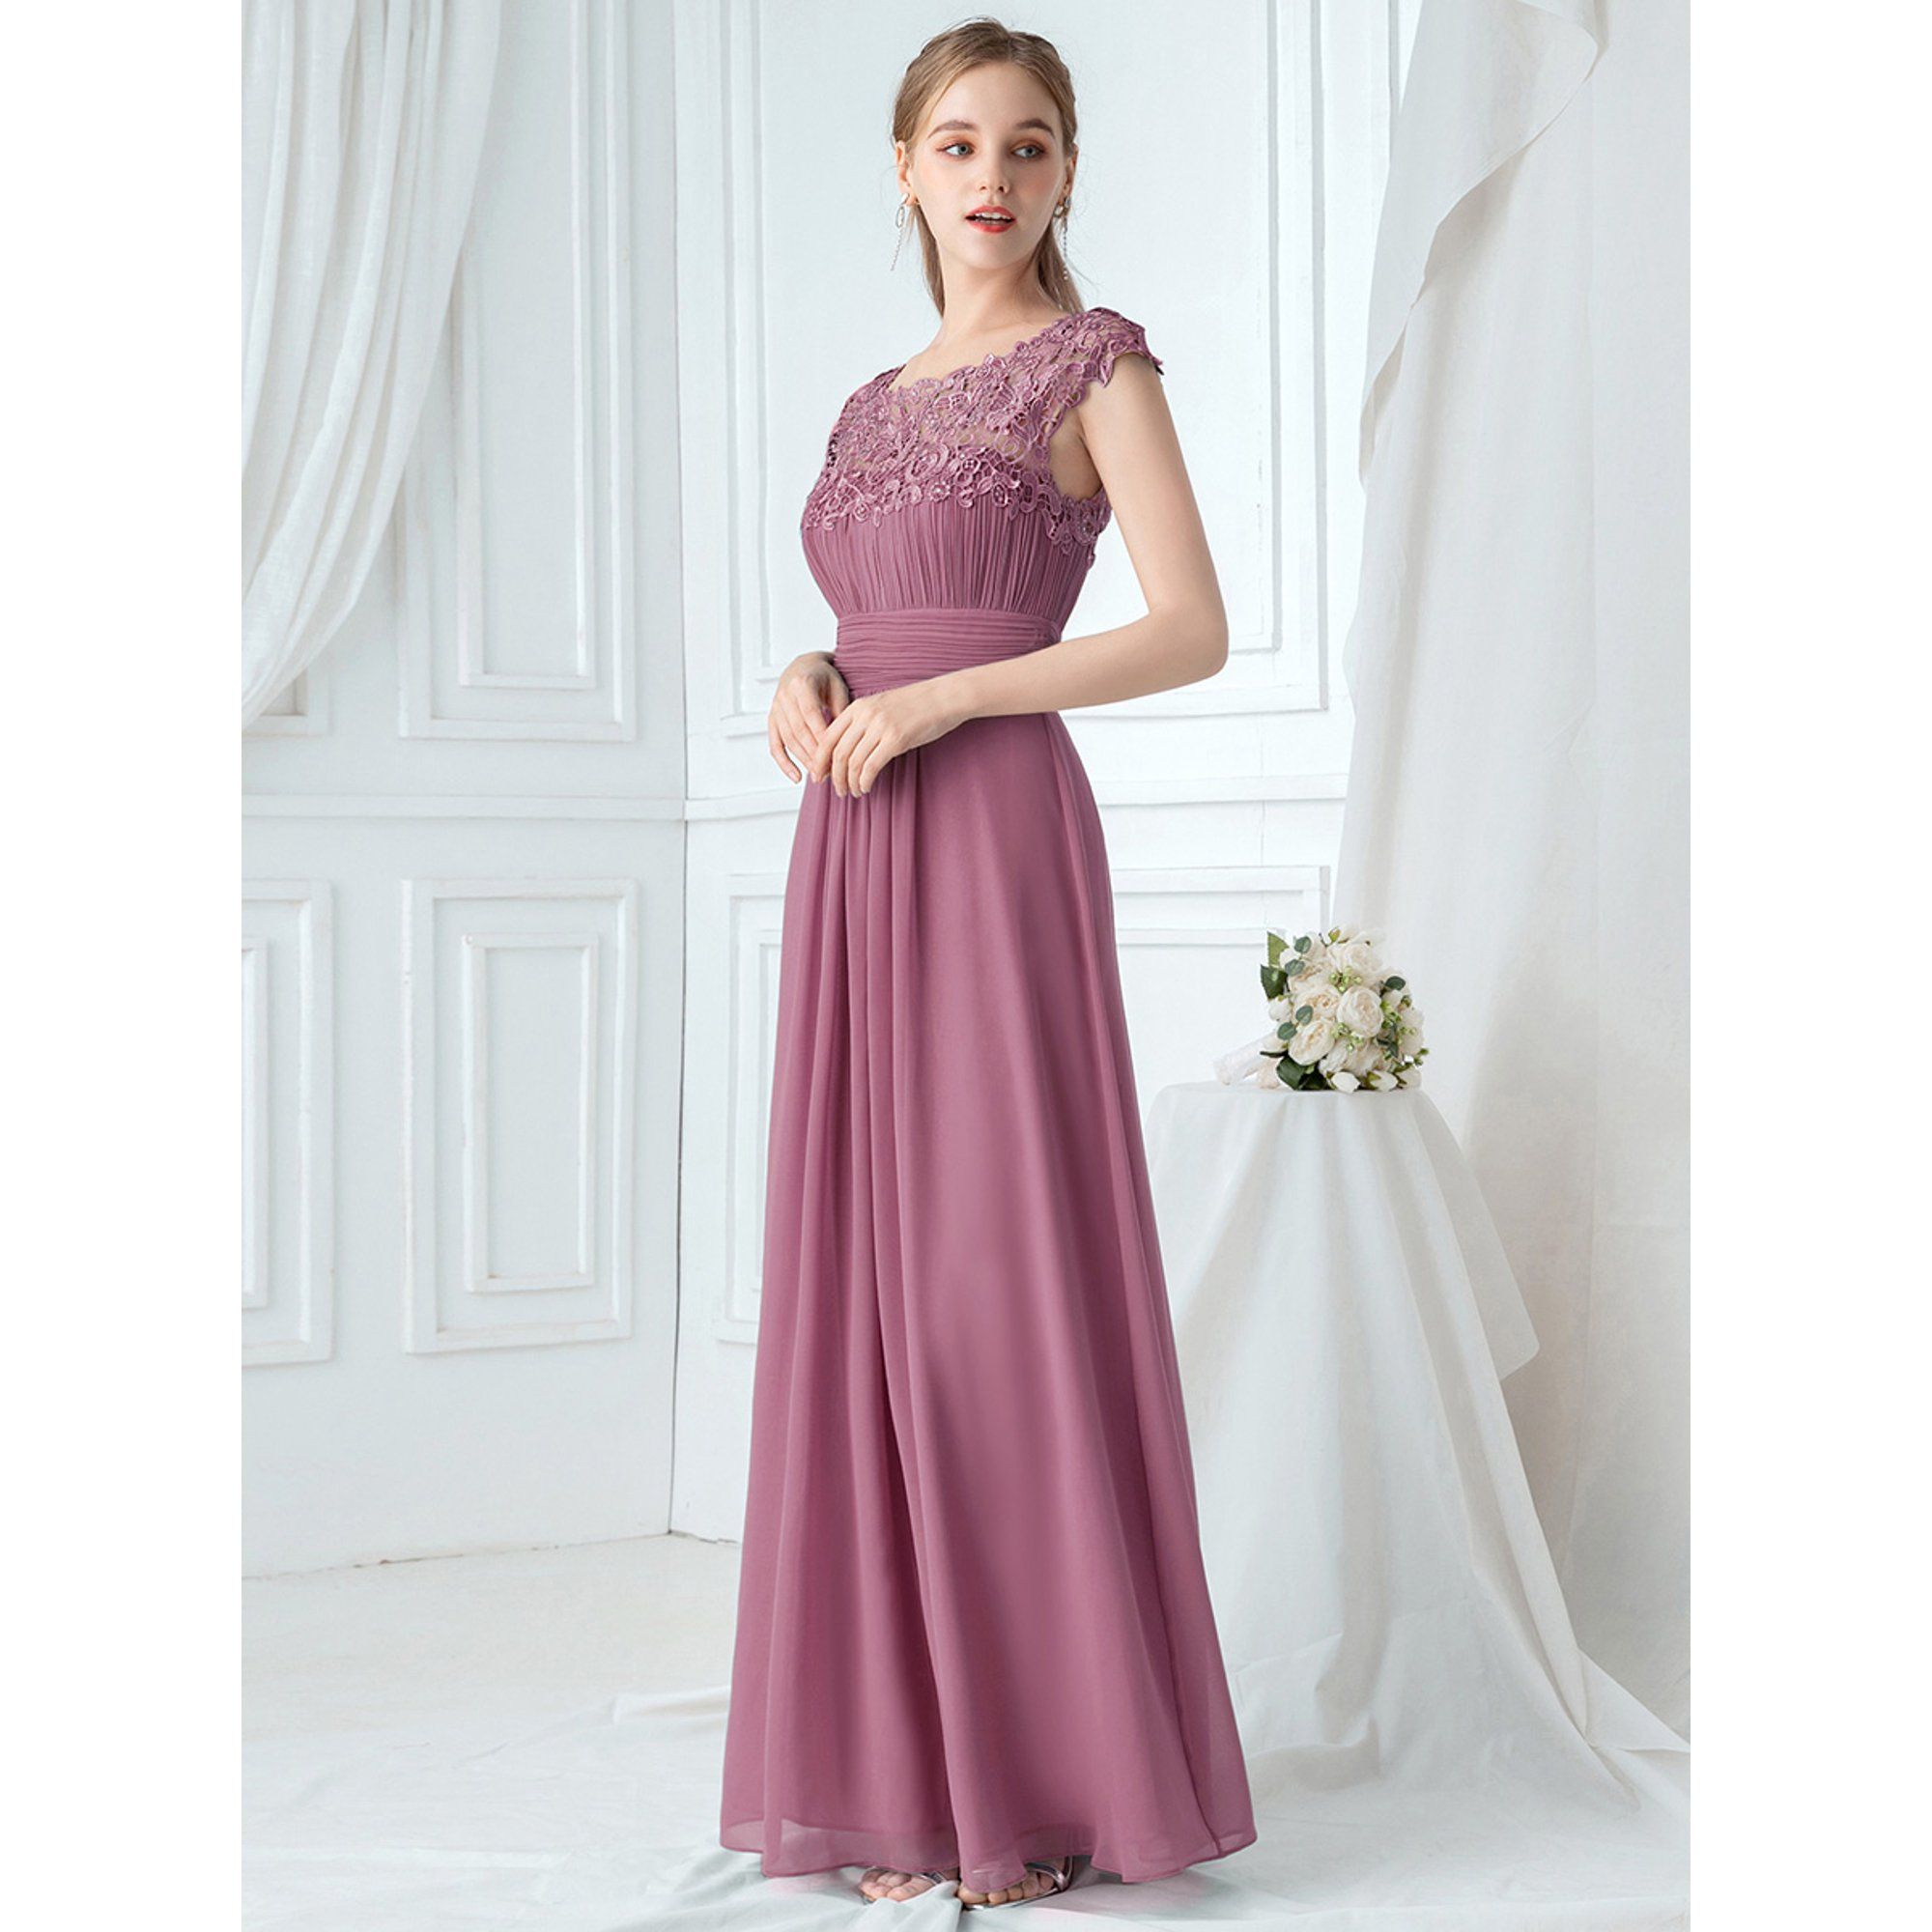 Ever Pretty Ever Pretty Womens Vintage Floral Lacey Prom Dresses For Women 99933 Burgundy Us4 Walmart Com Long Bridesmaid Dresses Evening Gowns Elegant Ball Dresses [ 2000 x 2000 Pixel ]